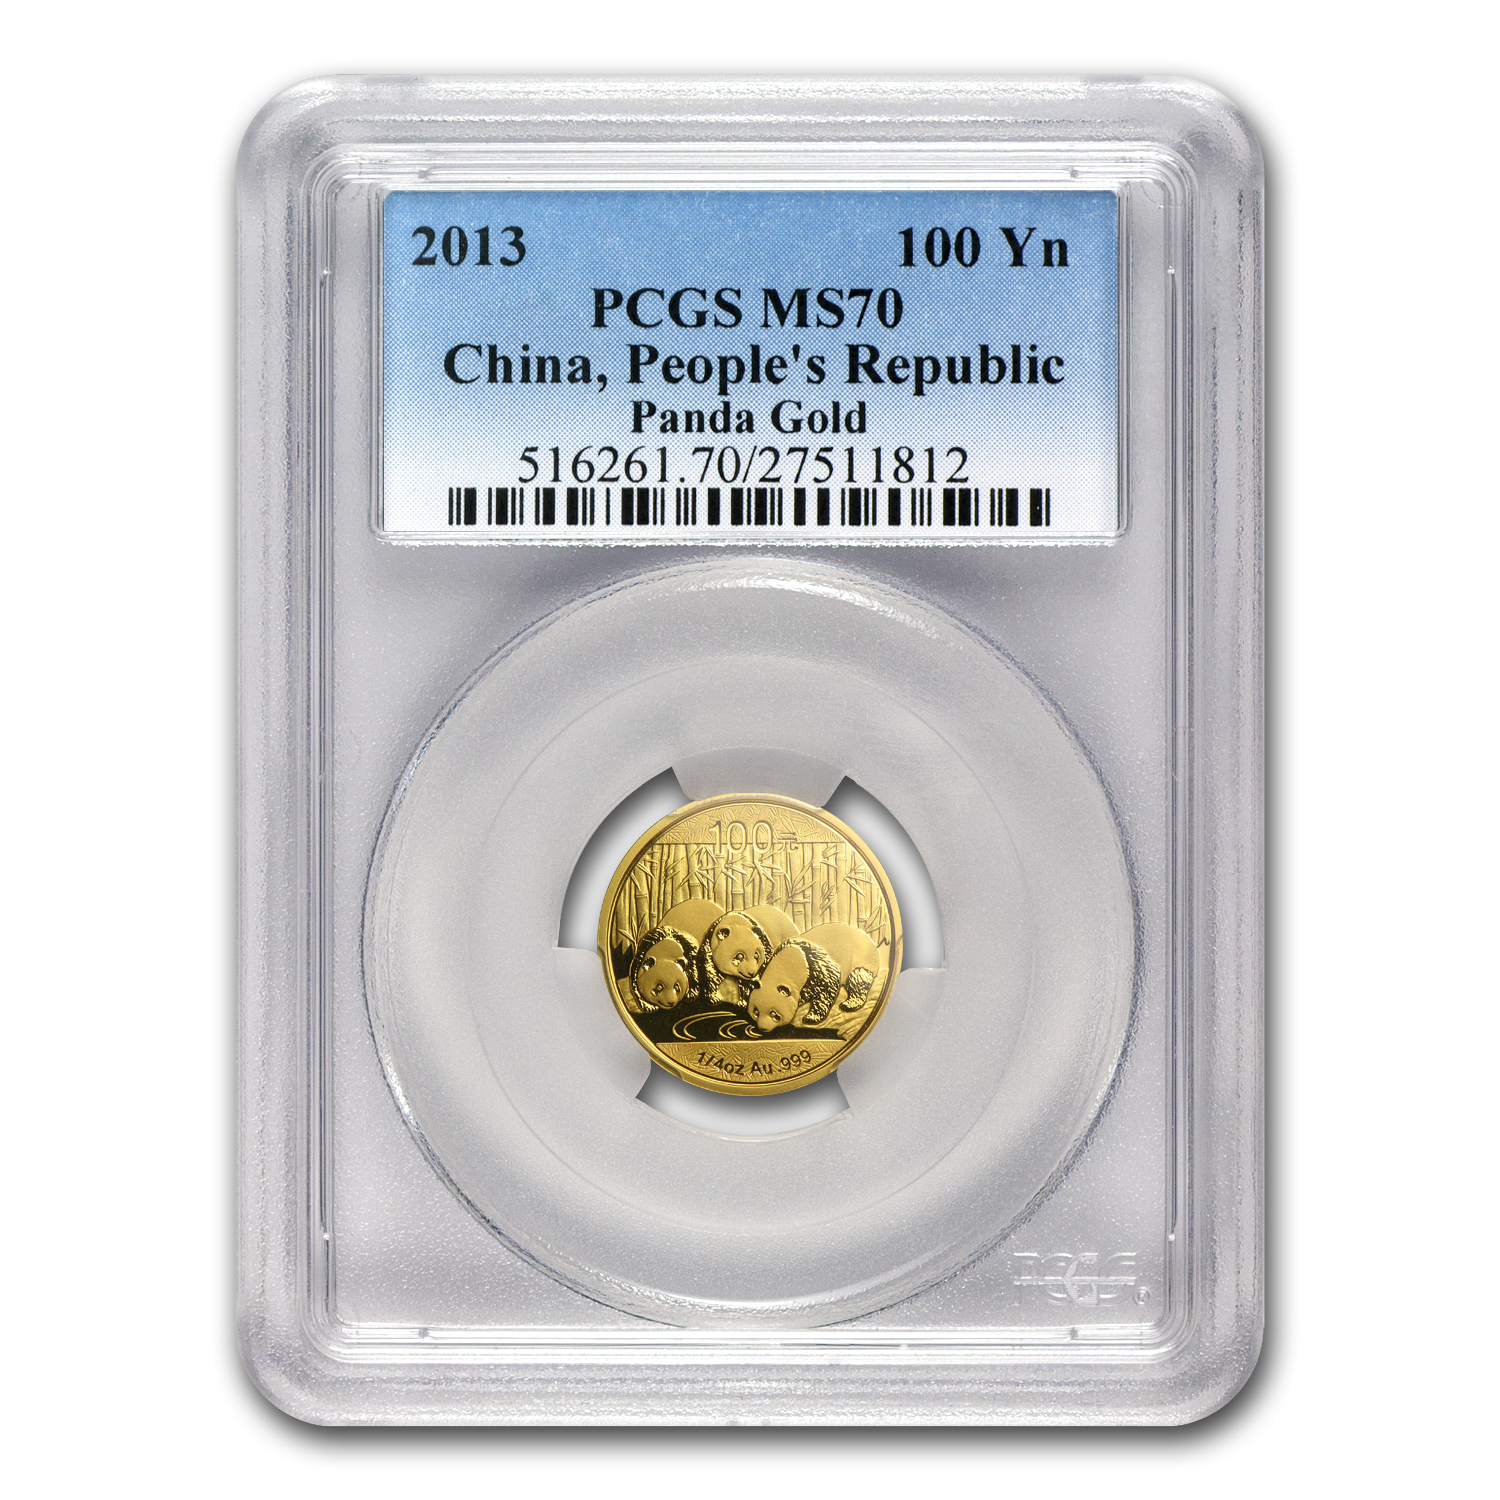 2013 1/4 oz Gold Chinese Panda MS-70 PCGS